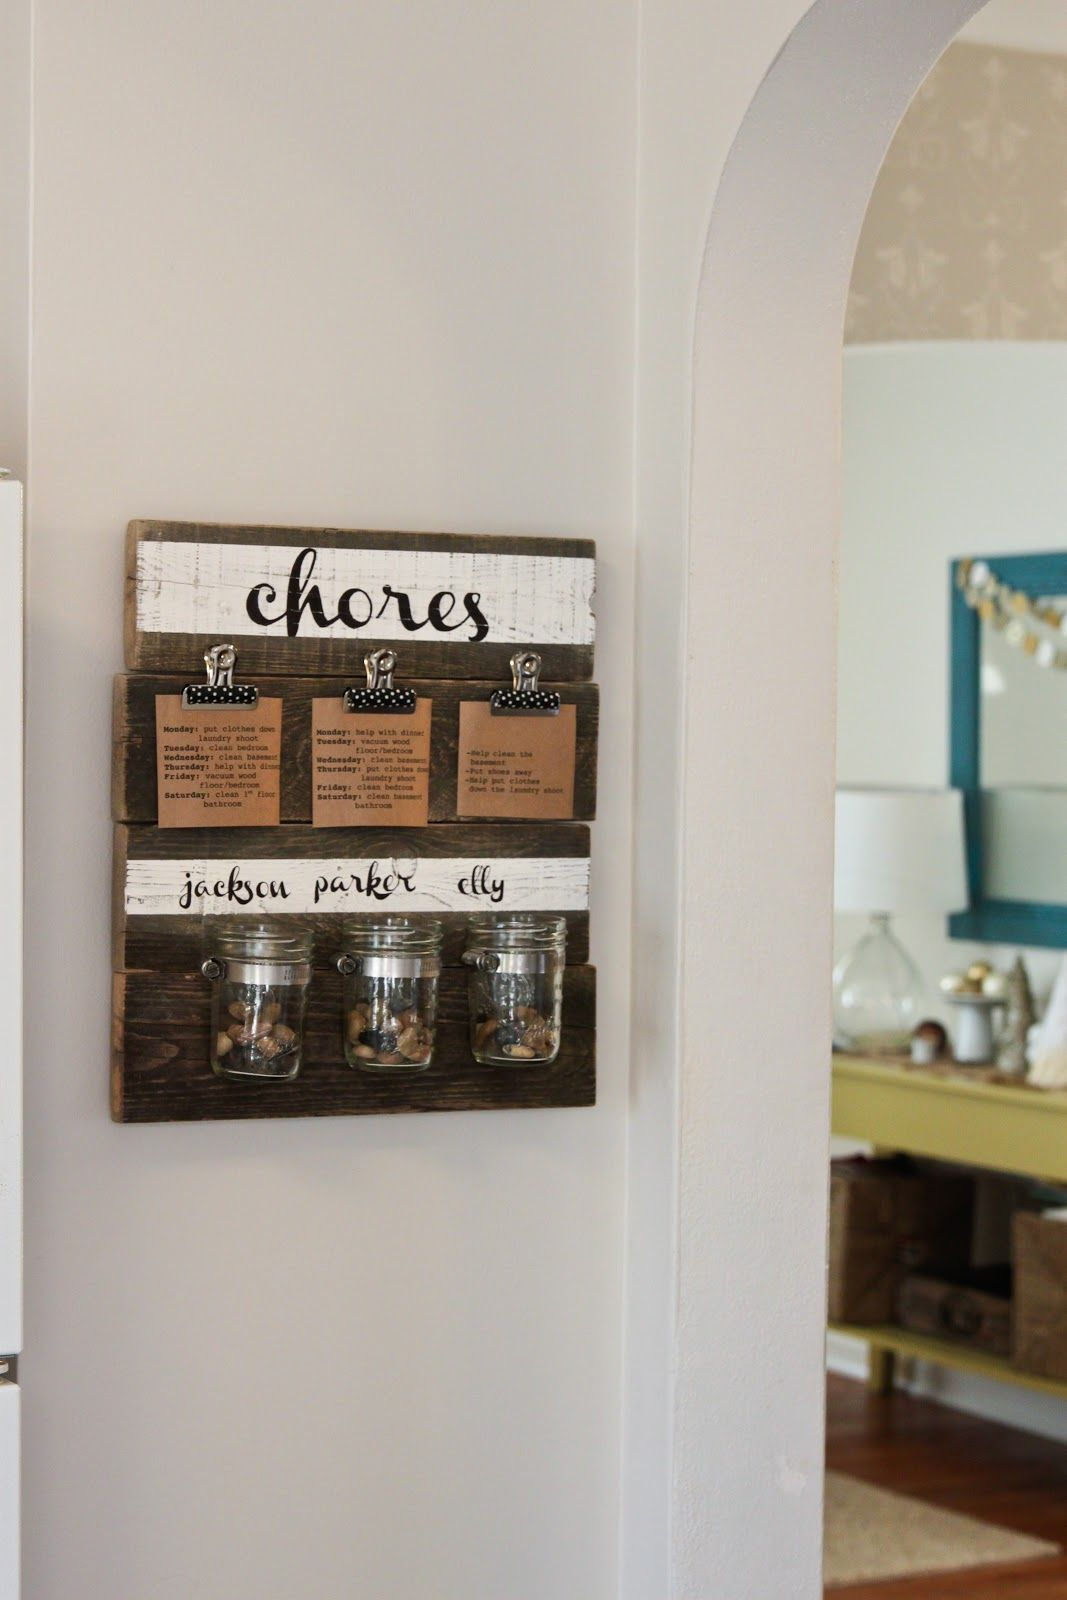 Kitchen Wall Organization Not As A Chore Chart But Like The Wood With Clips And Jars For